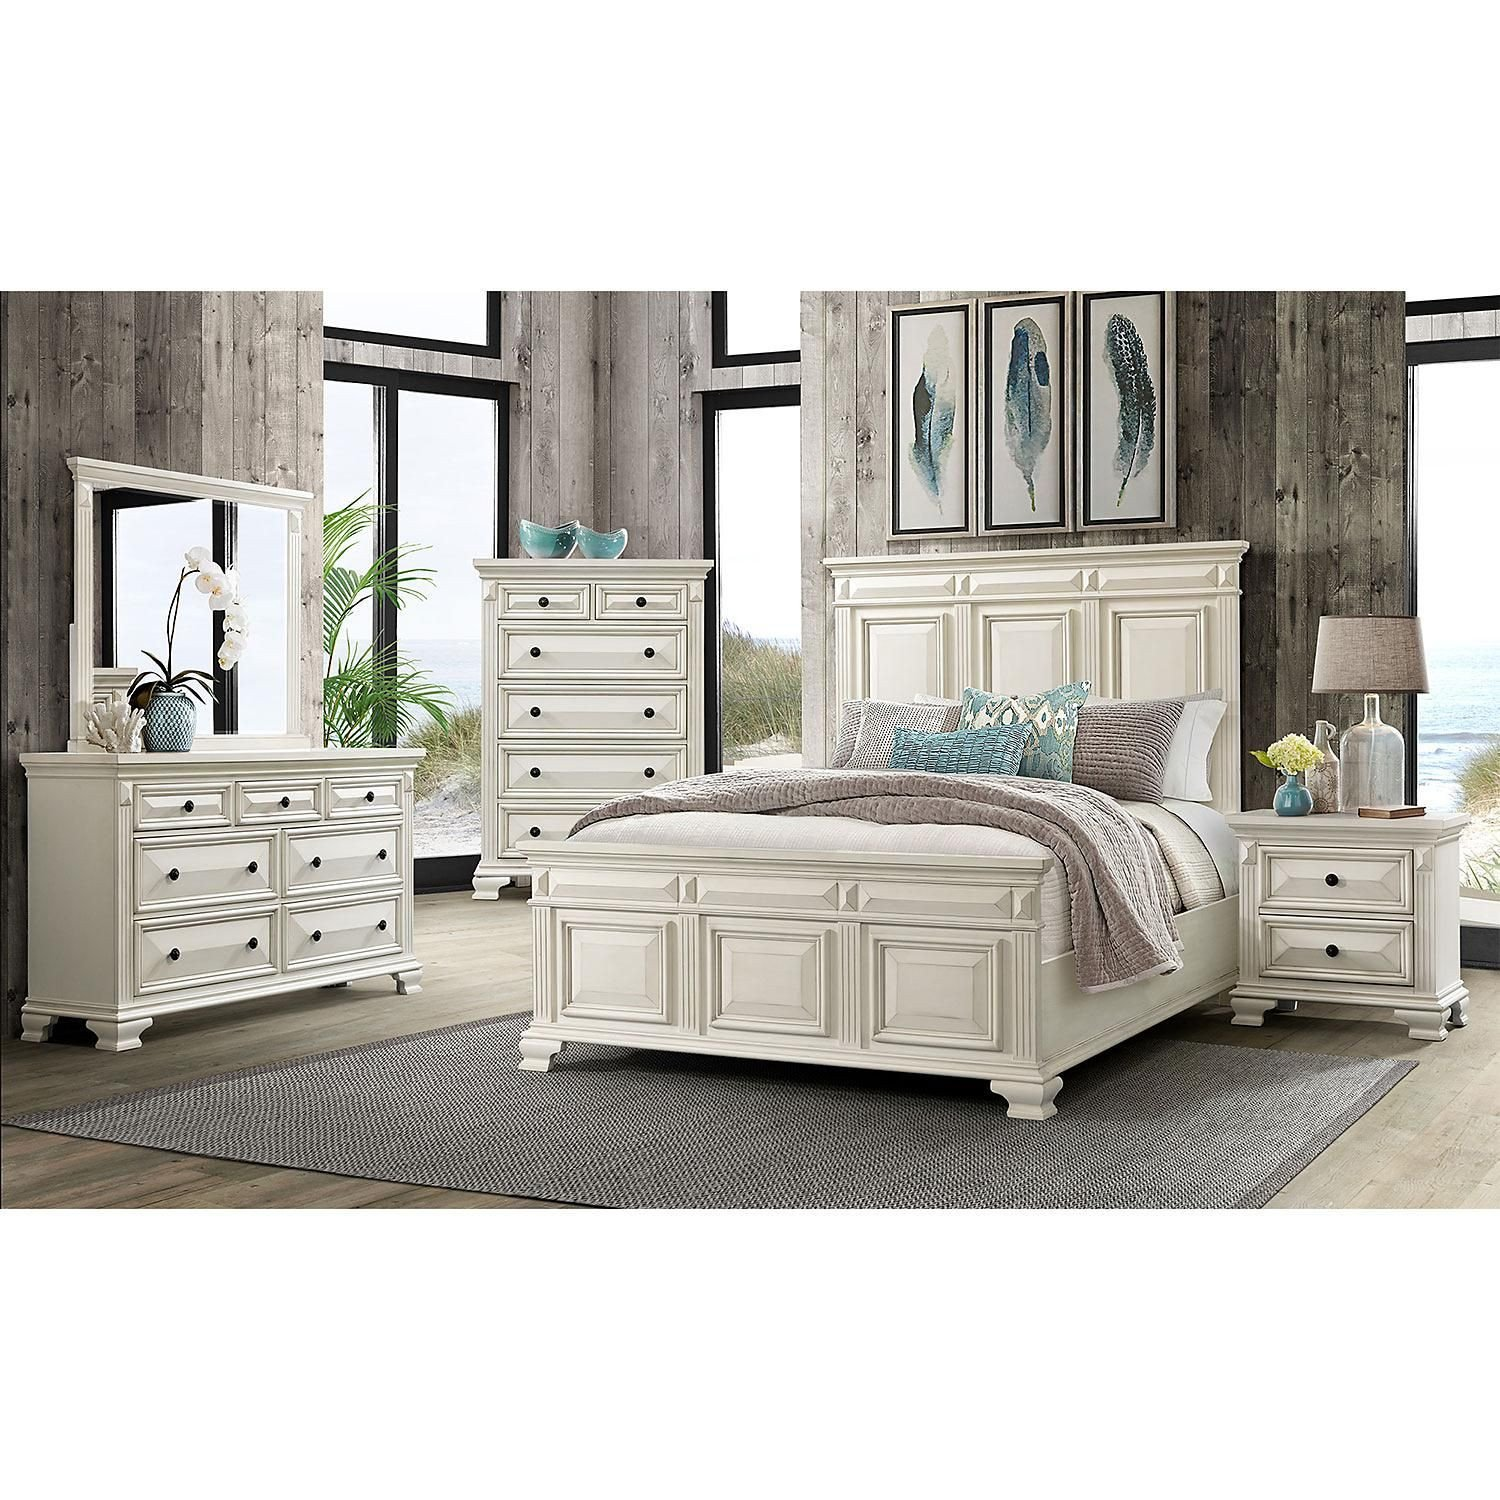 Grey and White Bedroom Furniture Best Of $1599 00 society Den Trent Panel 6 Piece King Bedroom Set